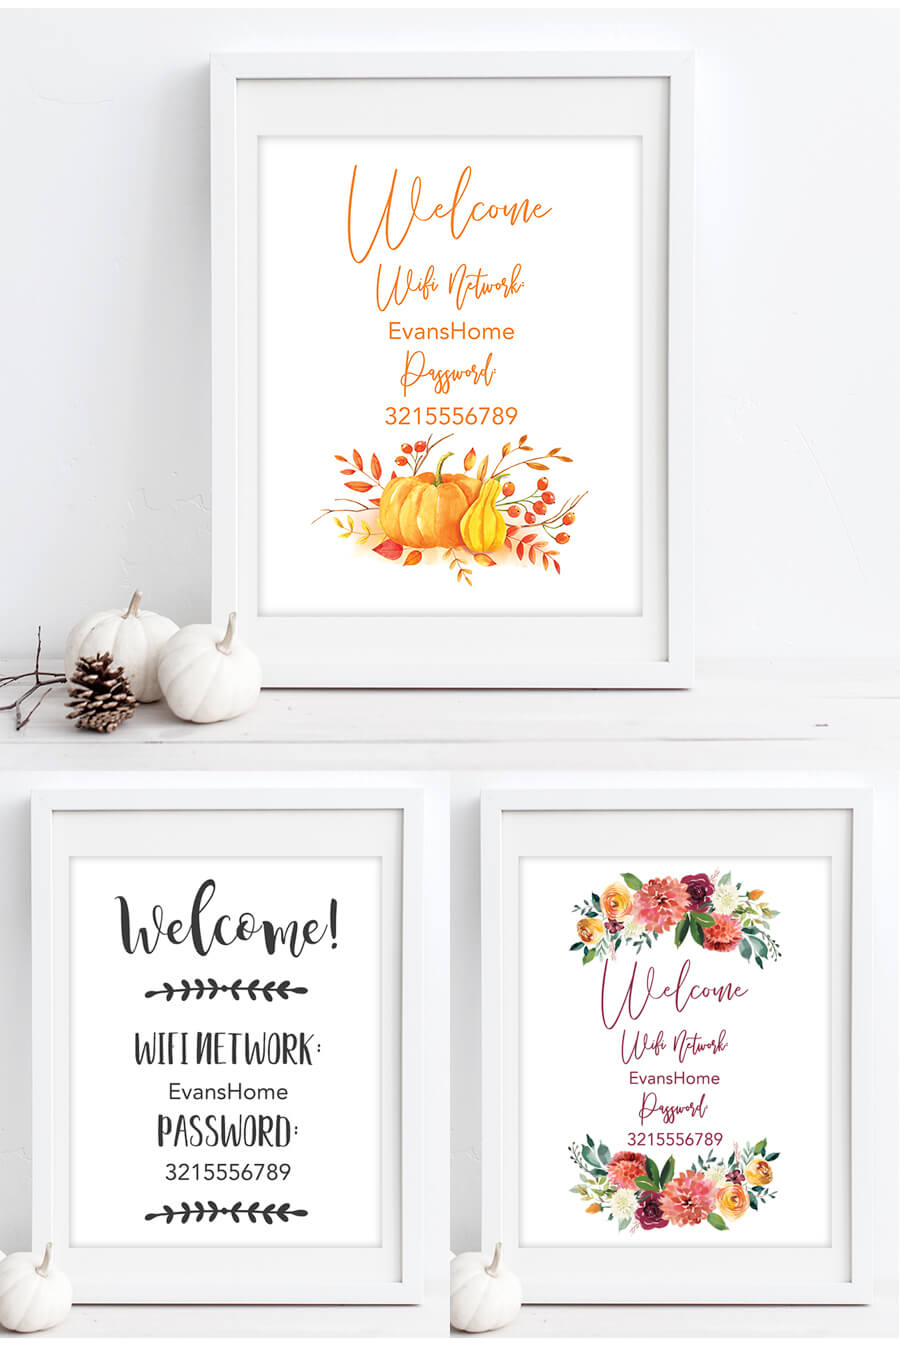 Free Printable Wifi Password Signs For Thanksgiving - Chicfetti - Free Printable Closed Thanksgiving Day Signs